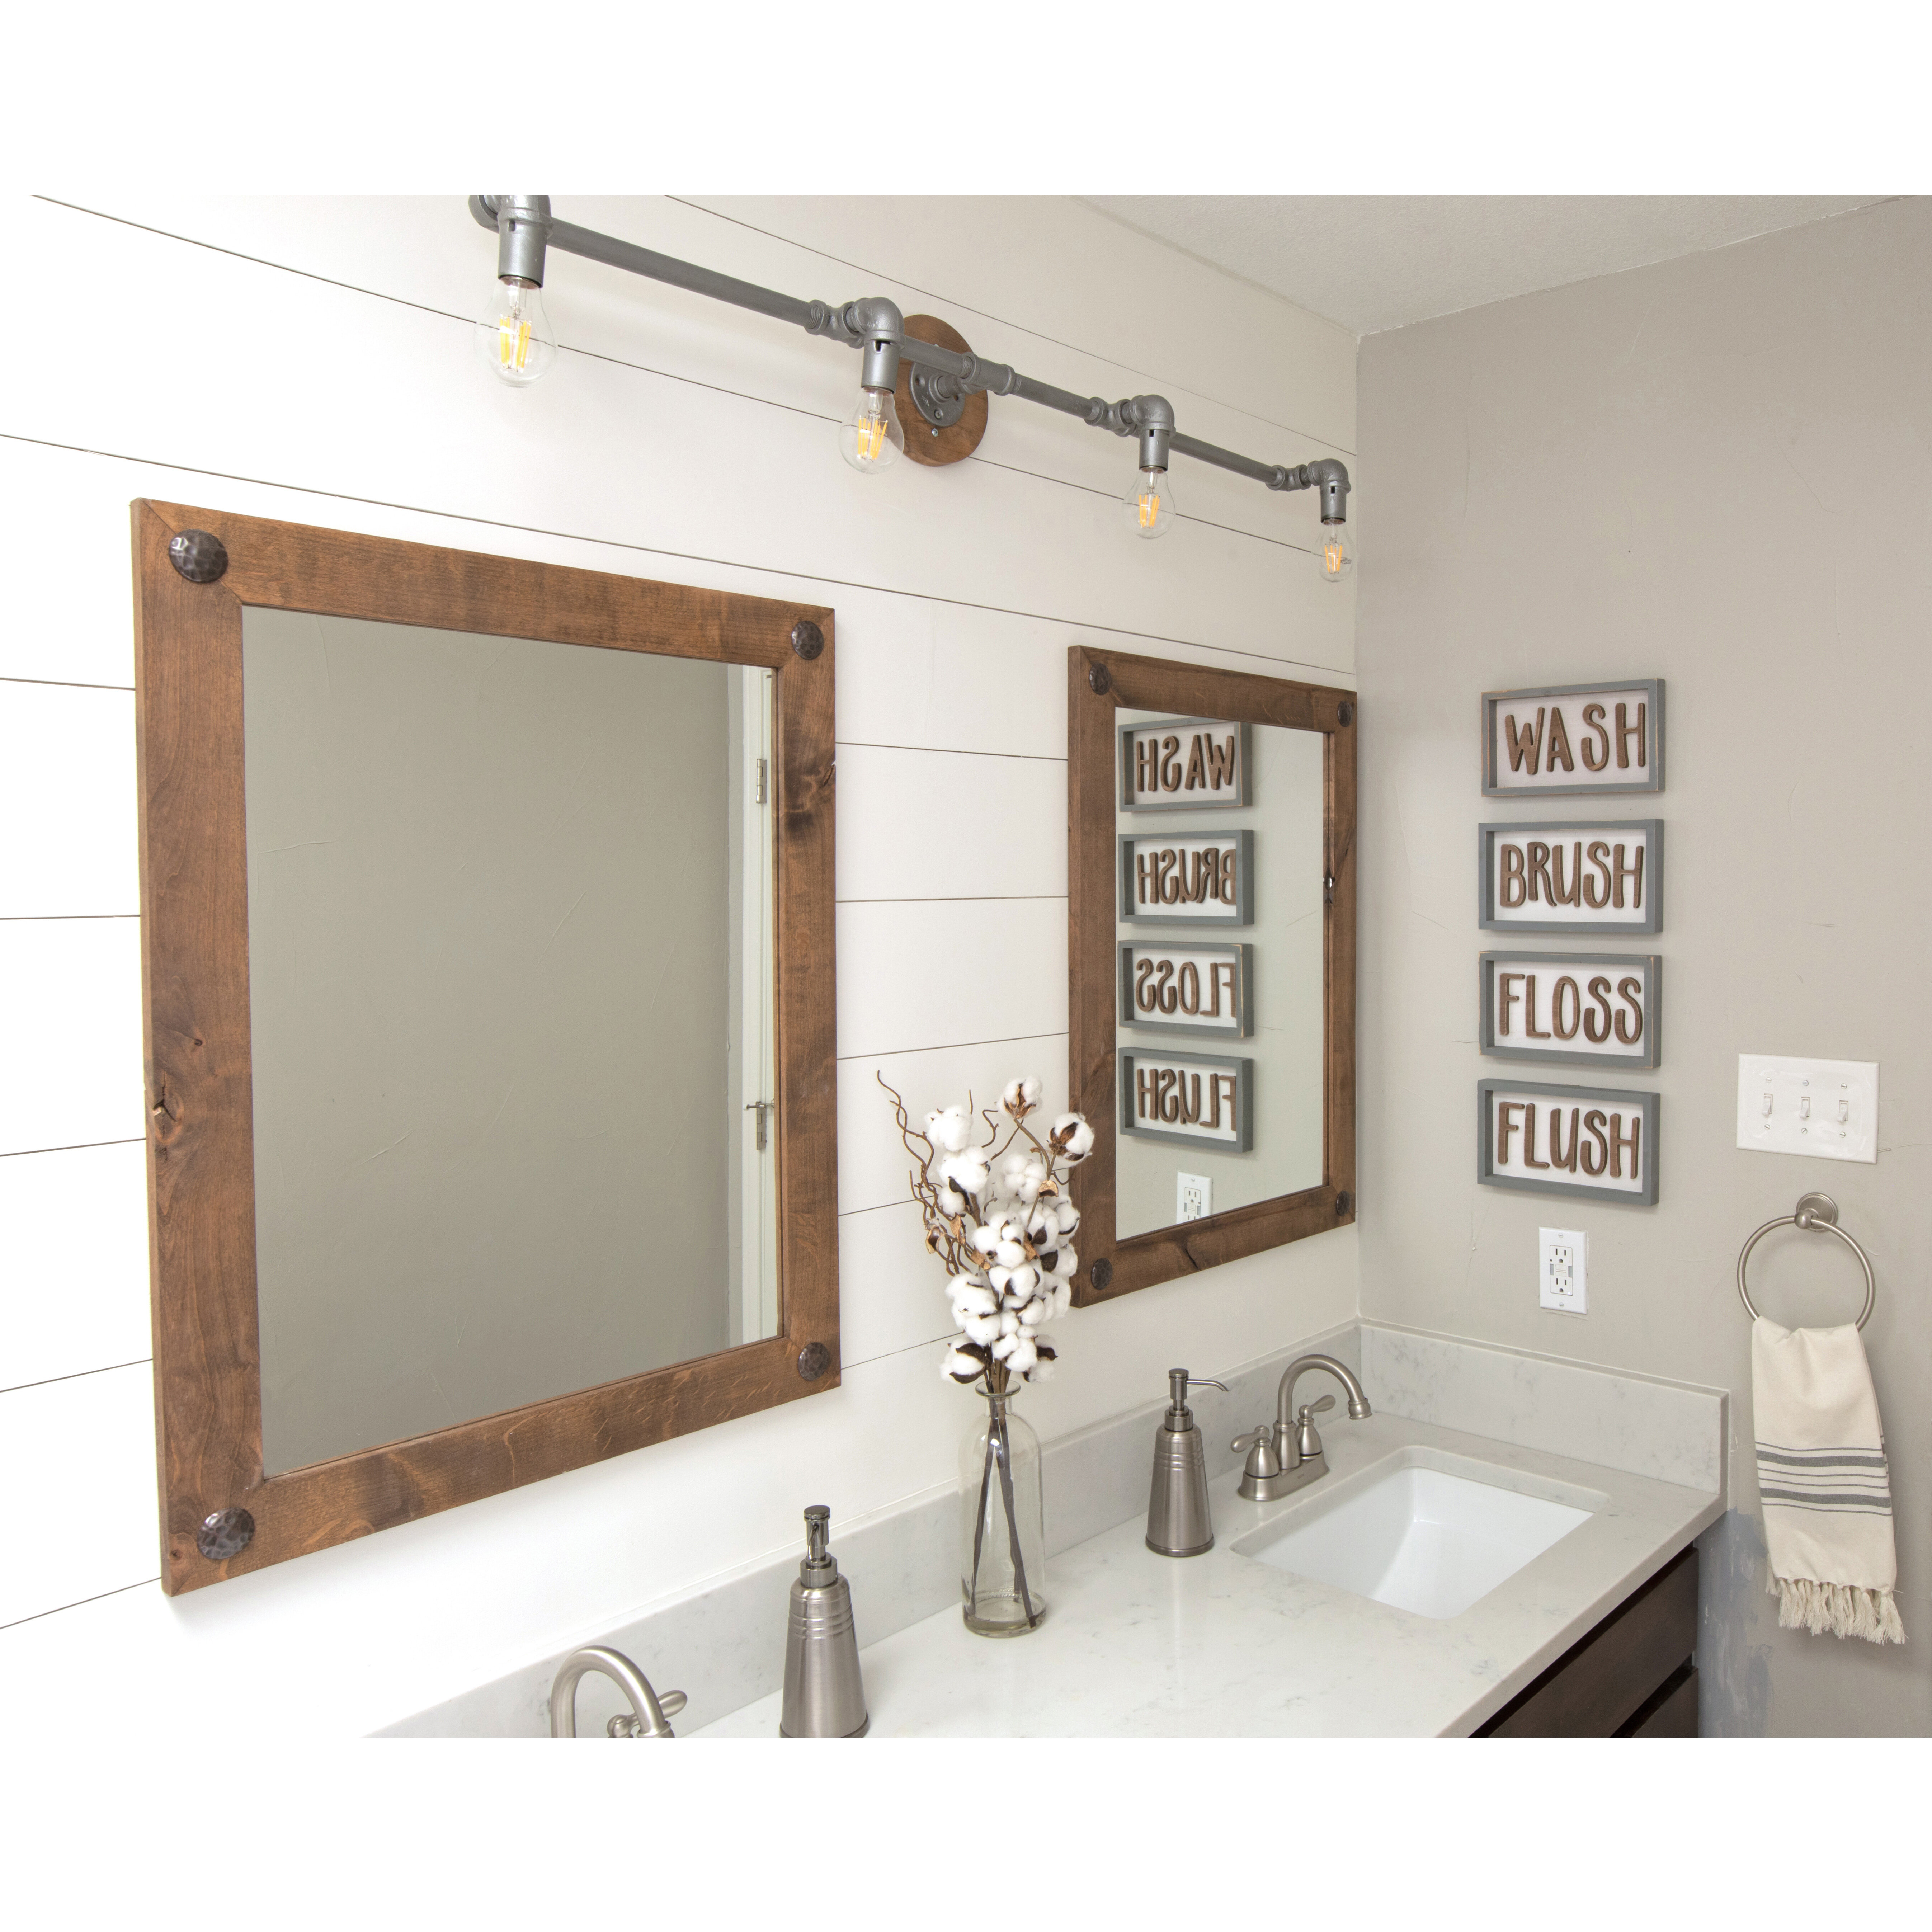 2 Piece Mirror Set | Wayfair In 2 Piece Priscilla Square Traditional Beveled Distressed Accent Mirror Sets (Image 3 of 20)